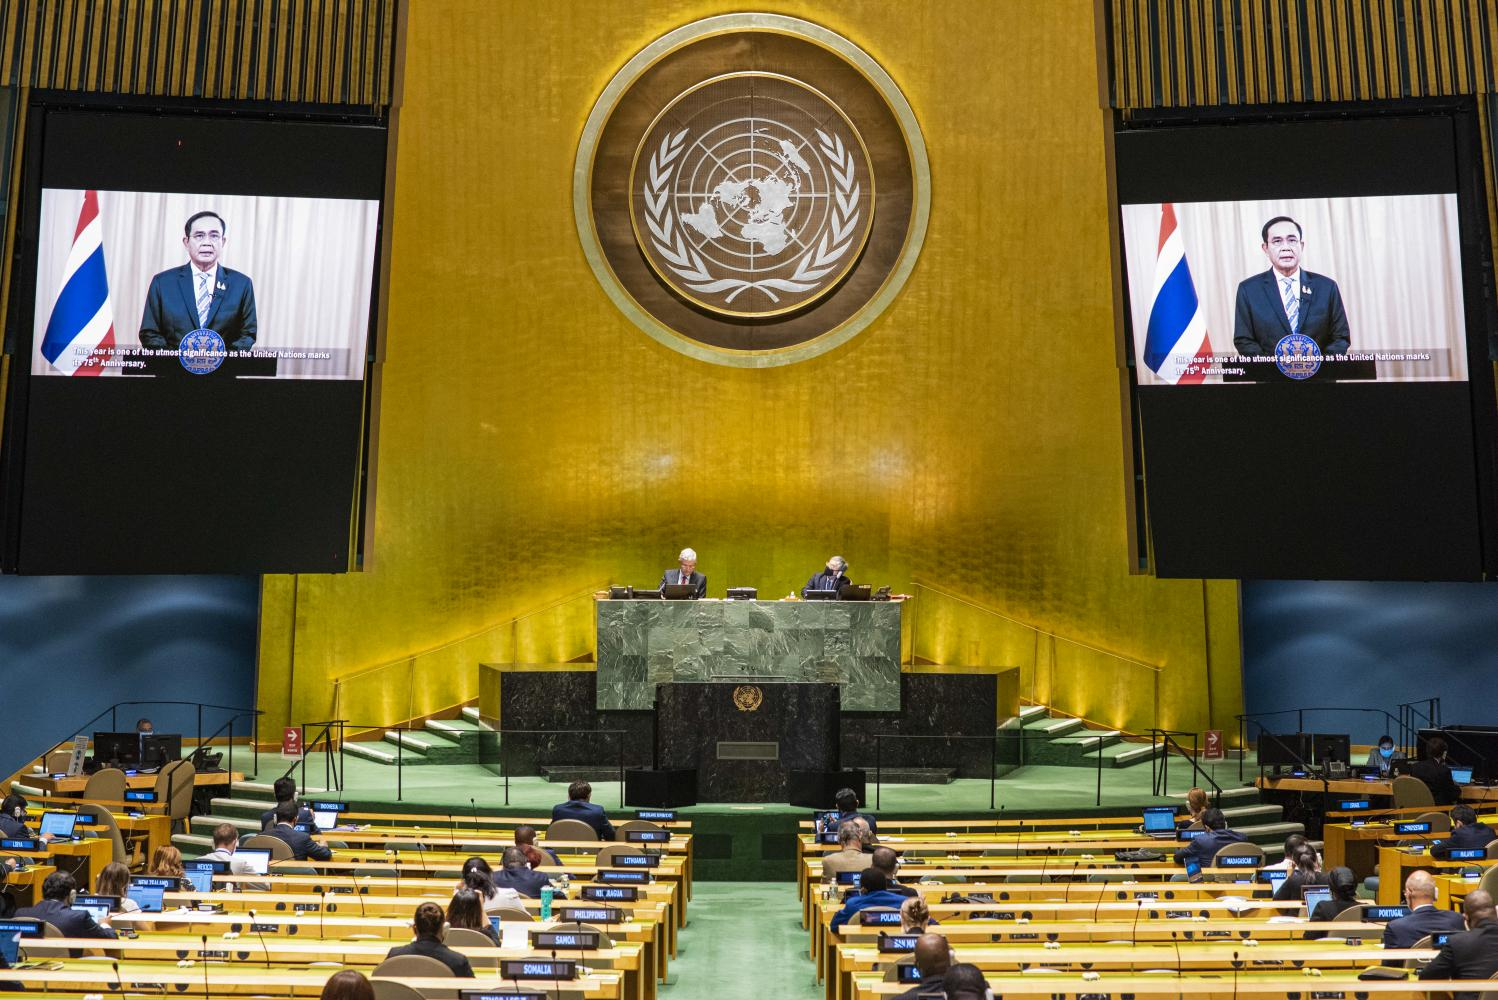 GLOBAL STAGE: Prime Minister Prayut Chan-o-cha on Saturday delivered Thailand's statement via a teleconference to the General Debate of the 75th Session of the United Nations General Assembly in New York.